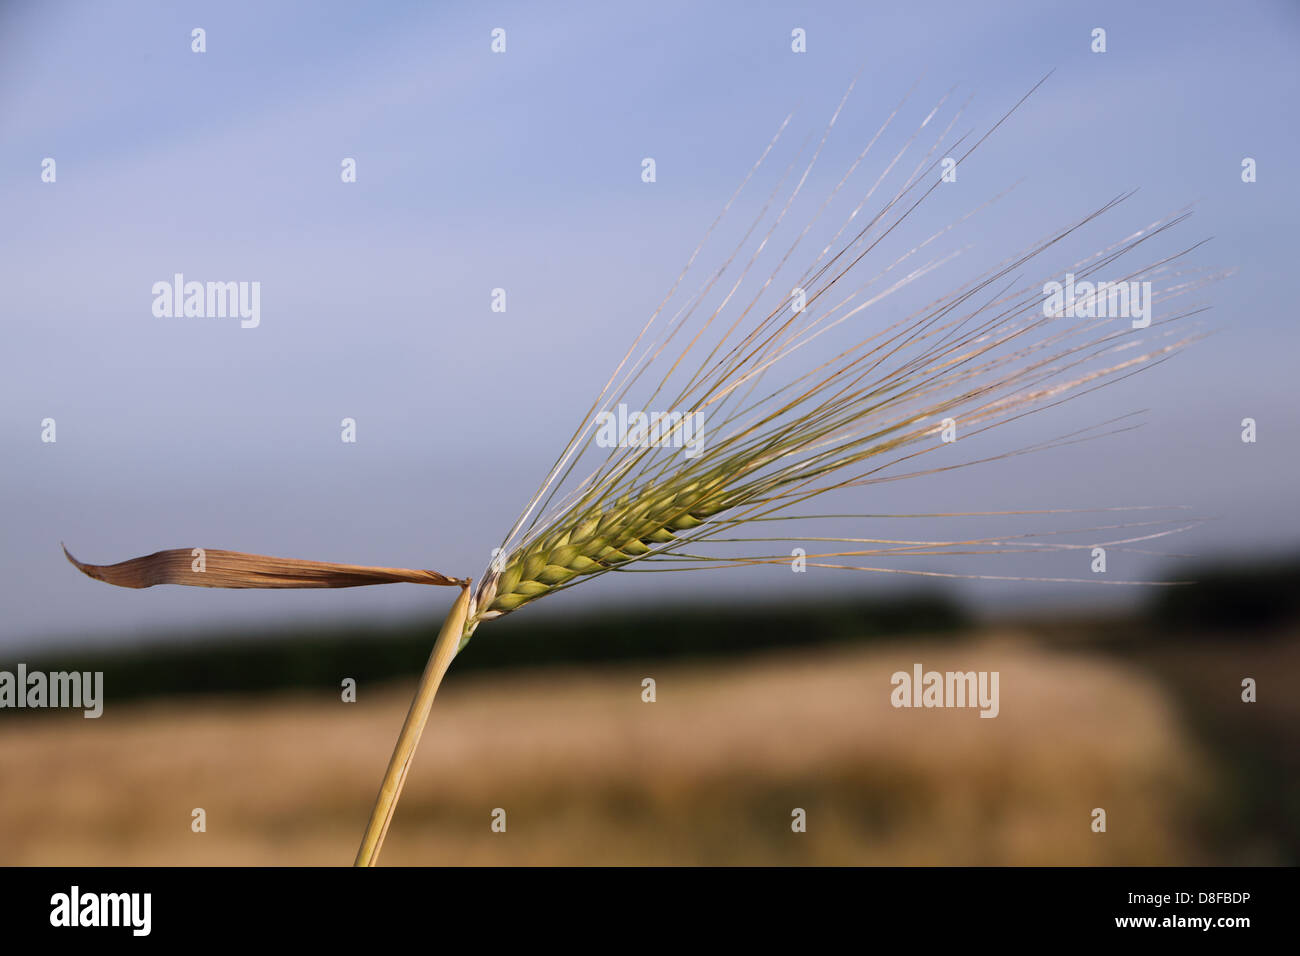 United,Kingdom,GB,great,Britain,blowing,in,the,wind,summer,autumn,floor,barley,cereal,grain,bearing,grain-bearing,tip,part,of,the,stem,plant,wheat,maize,prominent,lobe,leaves,spike,central,stem,growing,grows,tightly,packed,rows,of,flowers.,development,develop,into,fruits,containing,edible,seeds,Gotonysmith,GF,Gluten-free,diet,free,protein,complex,kamut,and,spelt,barley,rye,triticale,treatment,for,celiac,disease,dermatitis,herpetiformis,intolerance,tolerant,to,corn,protected,leaves,called,husks,unripe,ears,contribute,significantly,to,field,fields,photosynthesis,parasite,Anguina,tritici,Cockle,tissues,growth,crop,rotation,system,Buy Pictures of,Buy Images Of